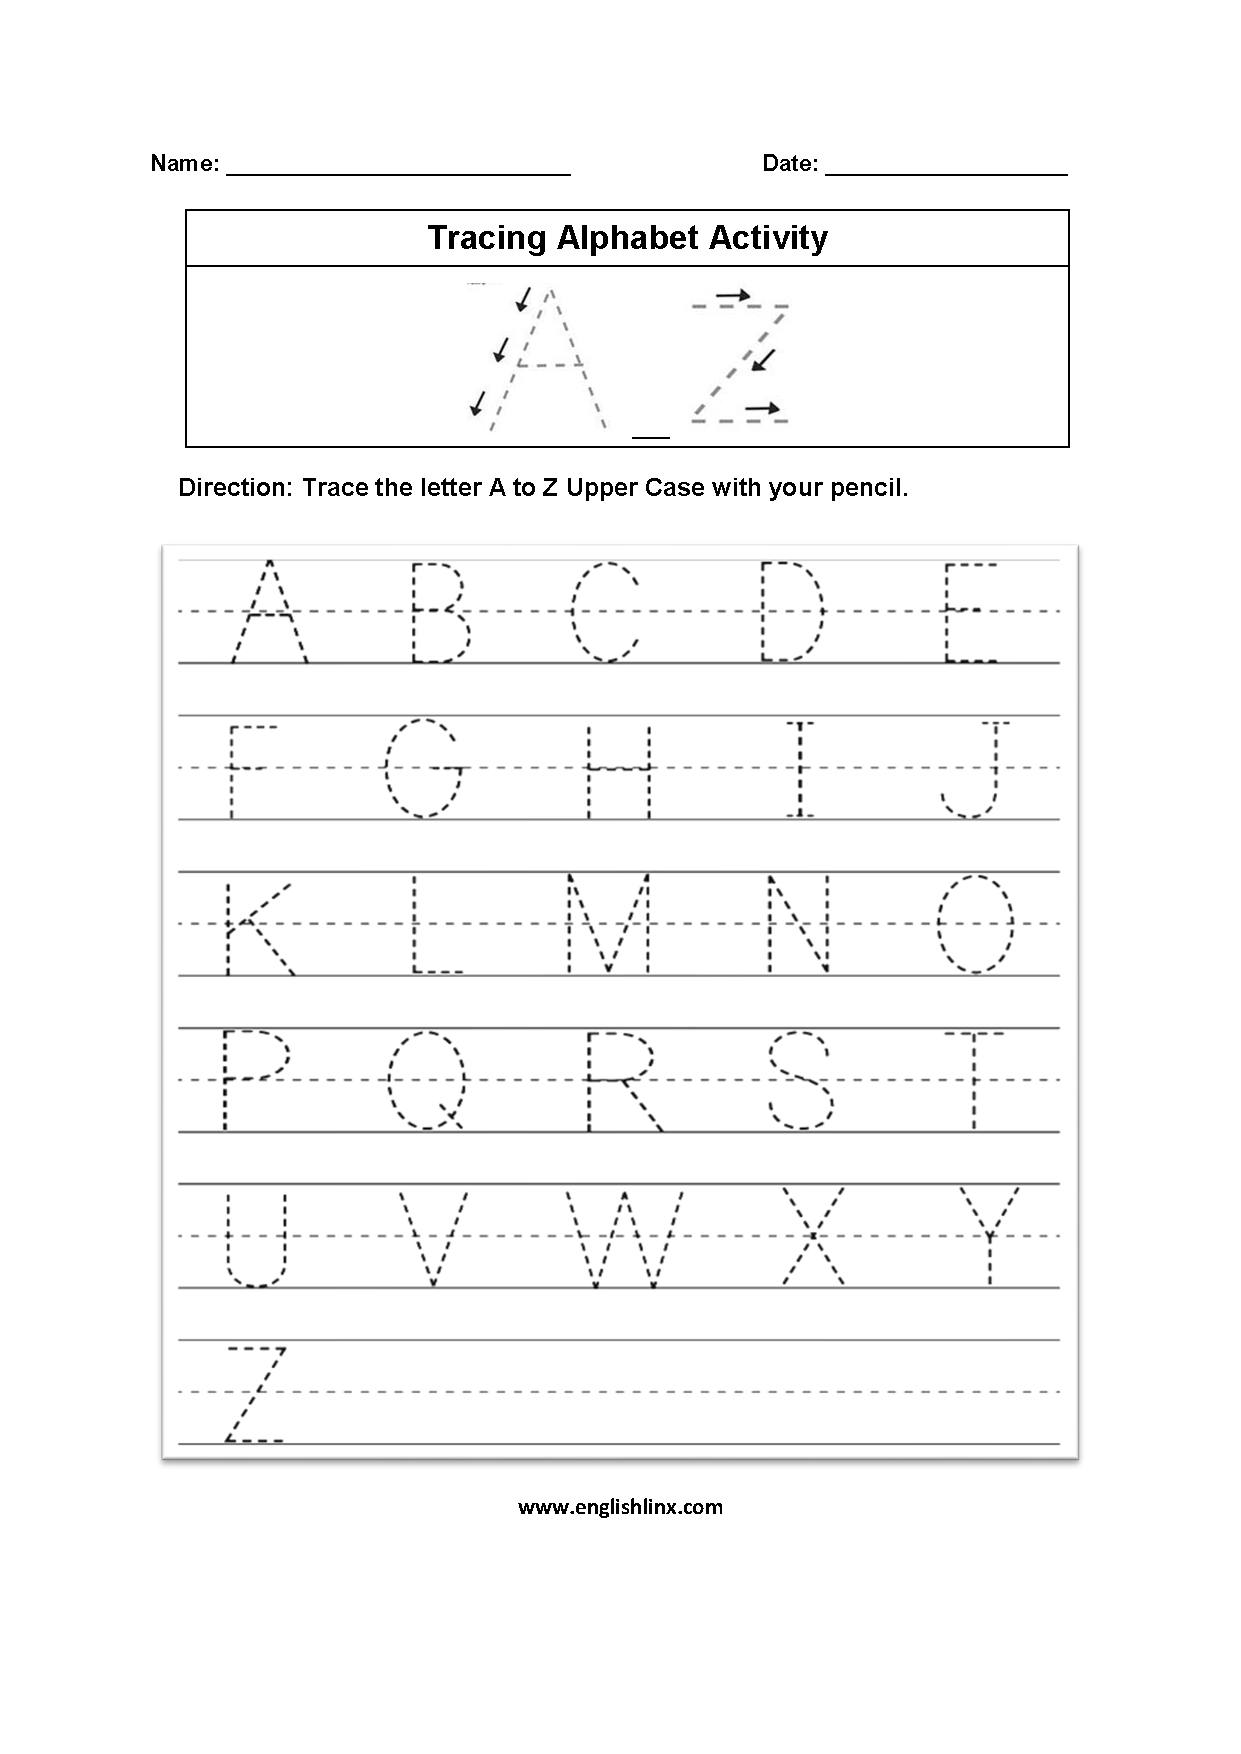 Alphabet Worksheets | Tracing Alphabet Worksheets within Tracing Letters A To Z